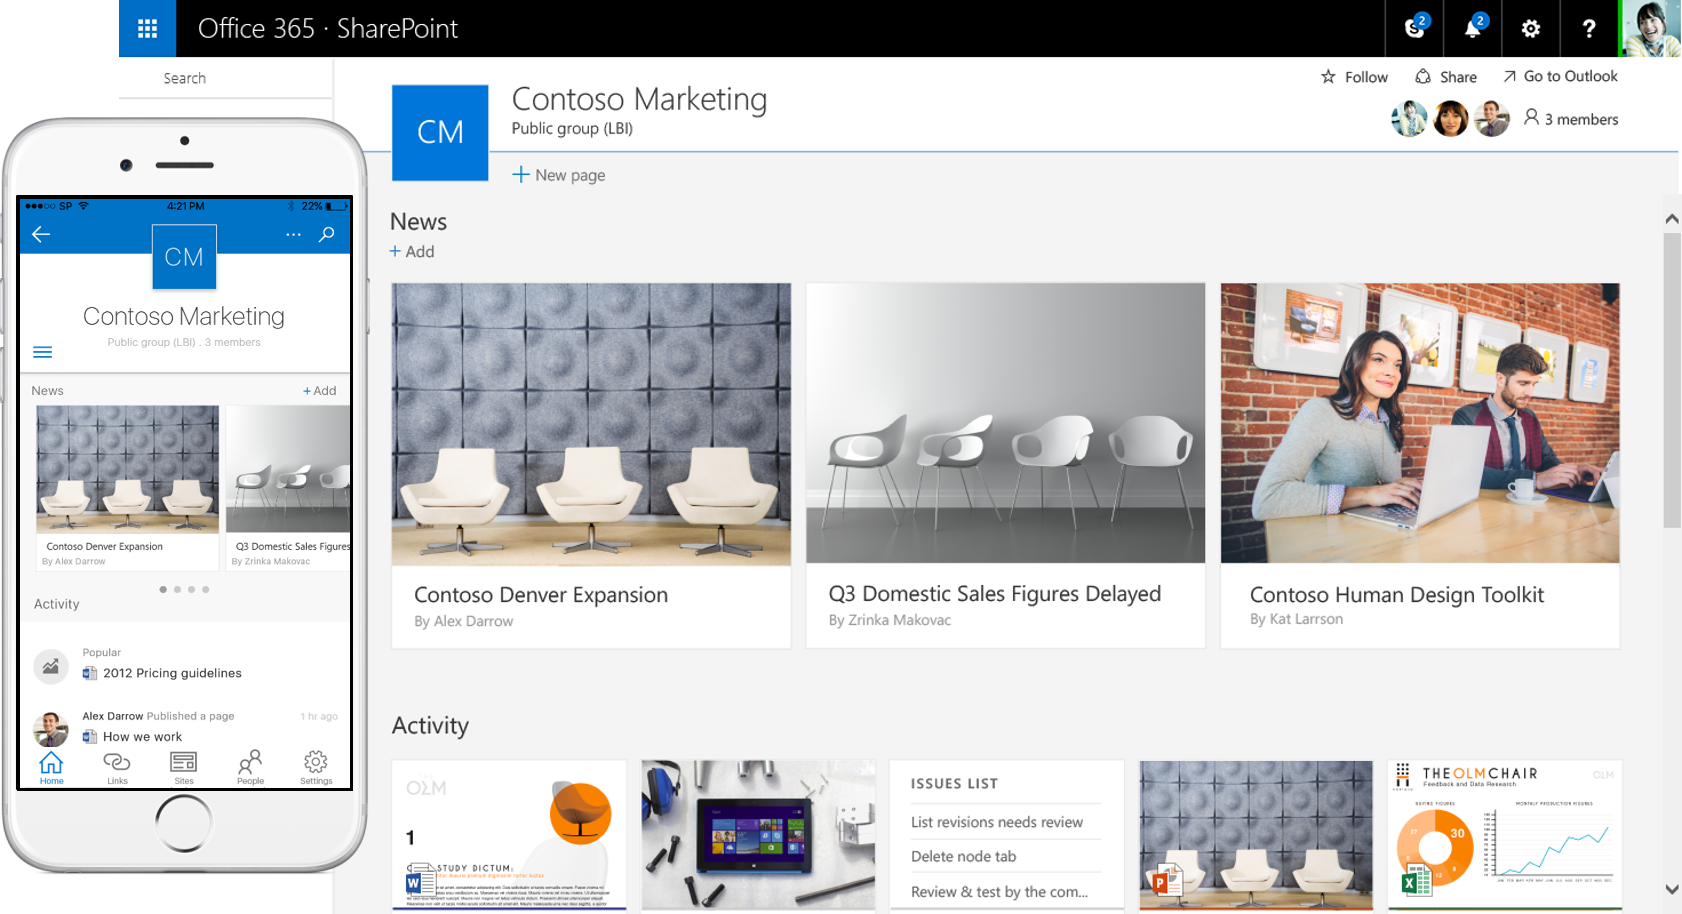 sharepoint and onedrive